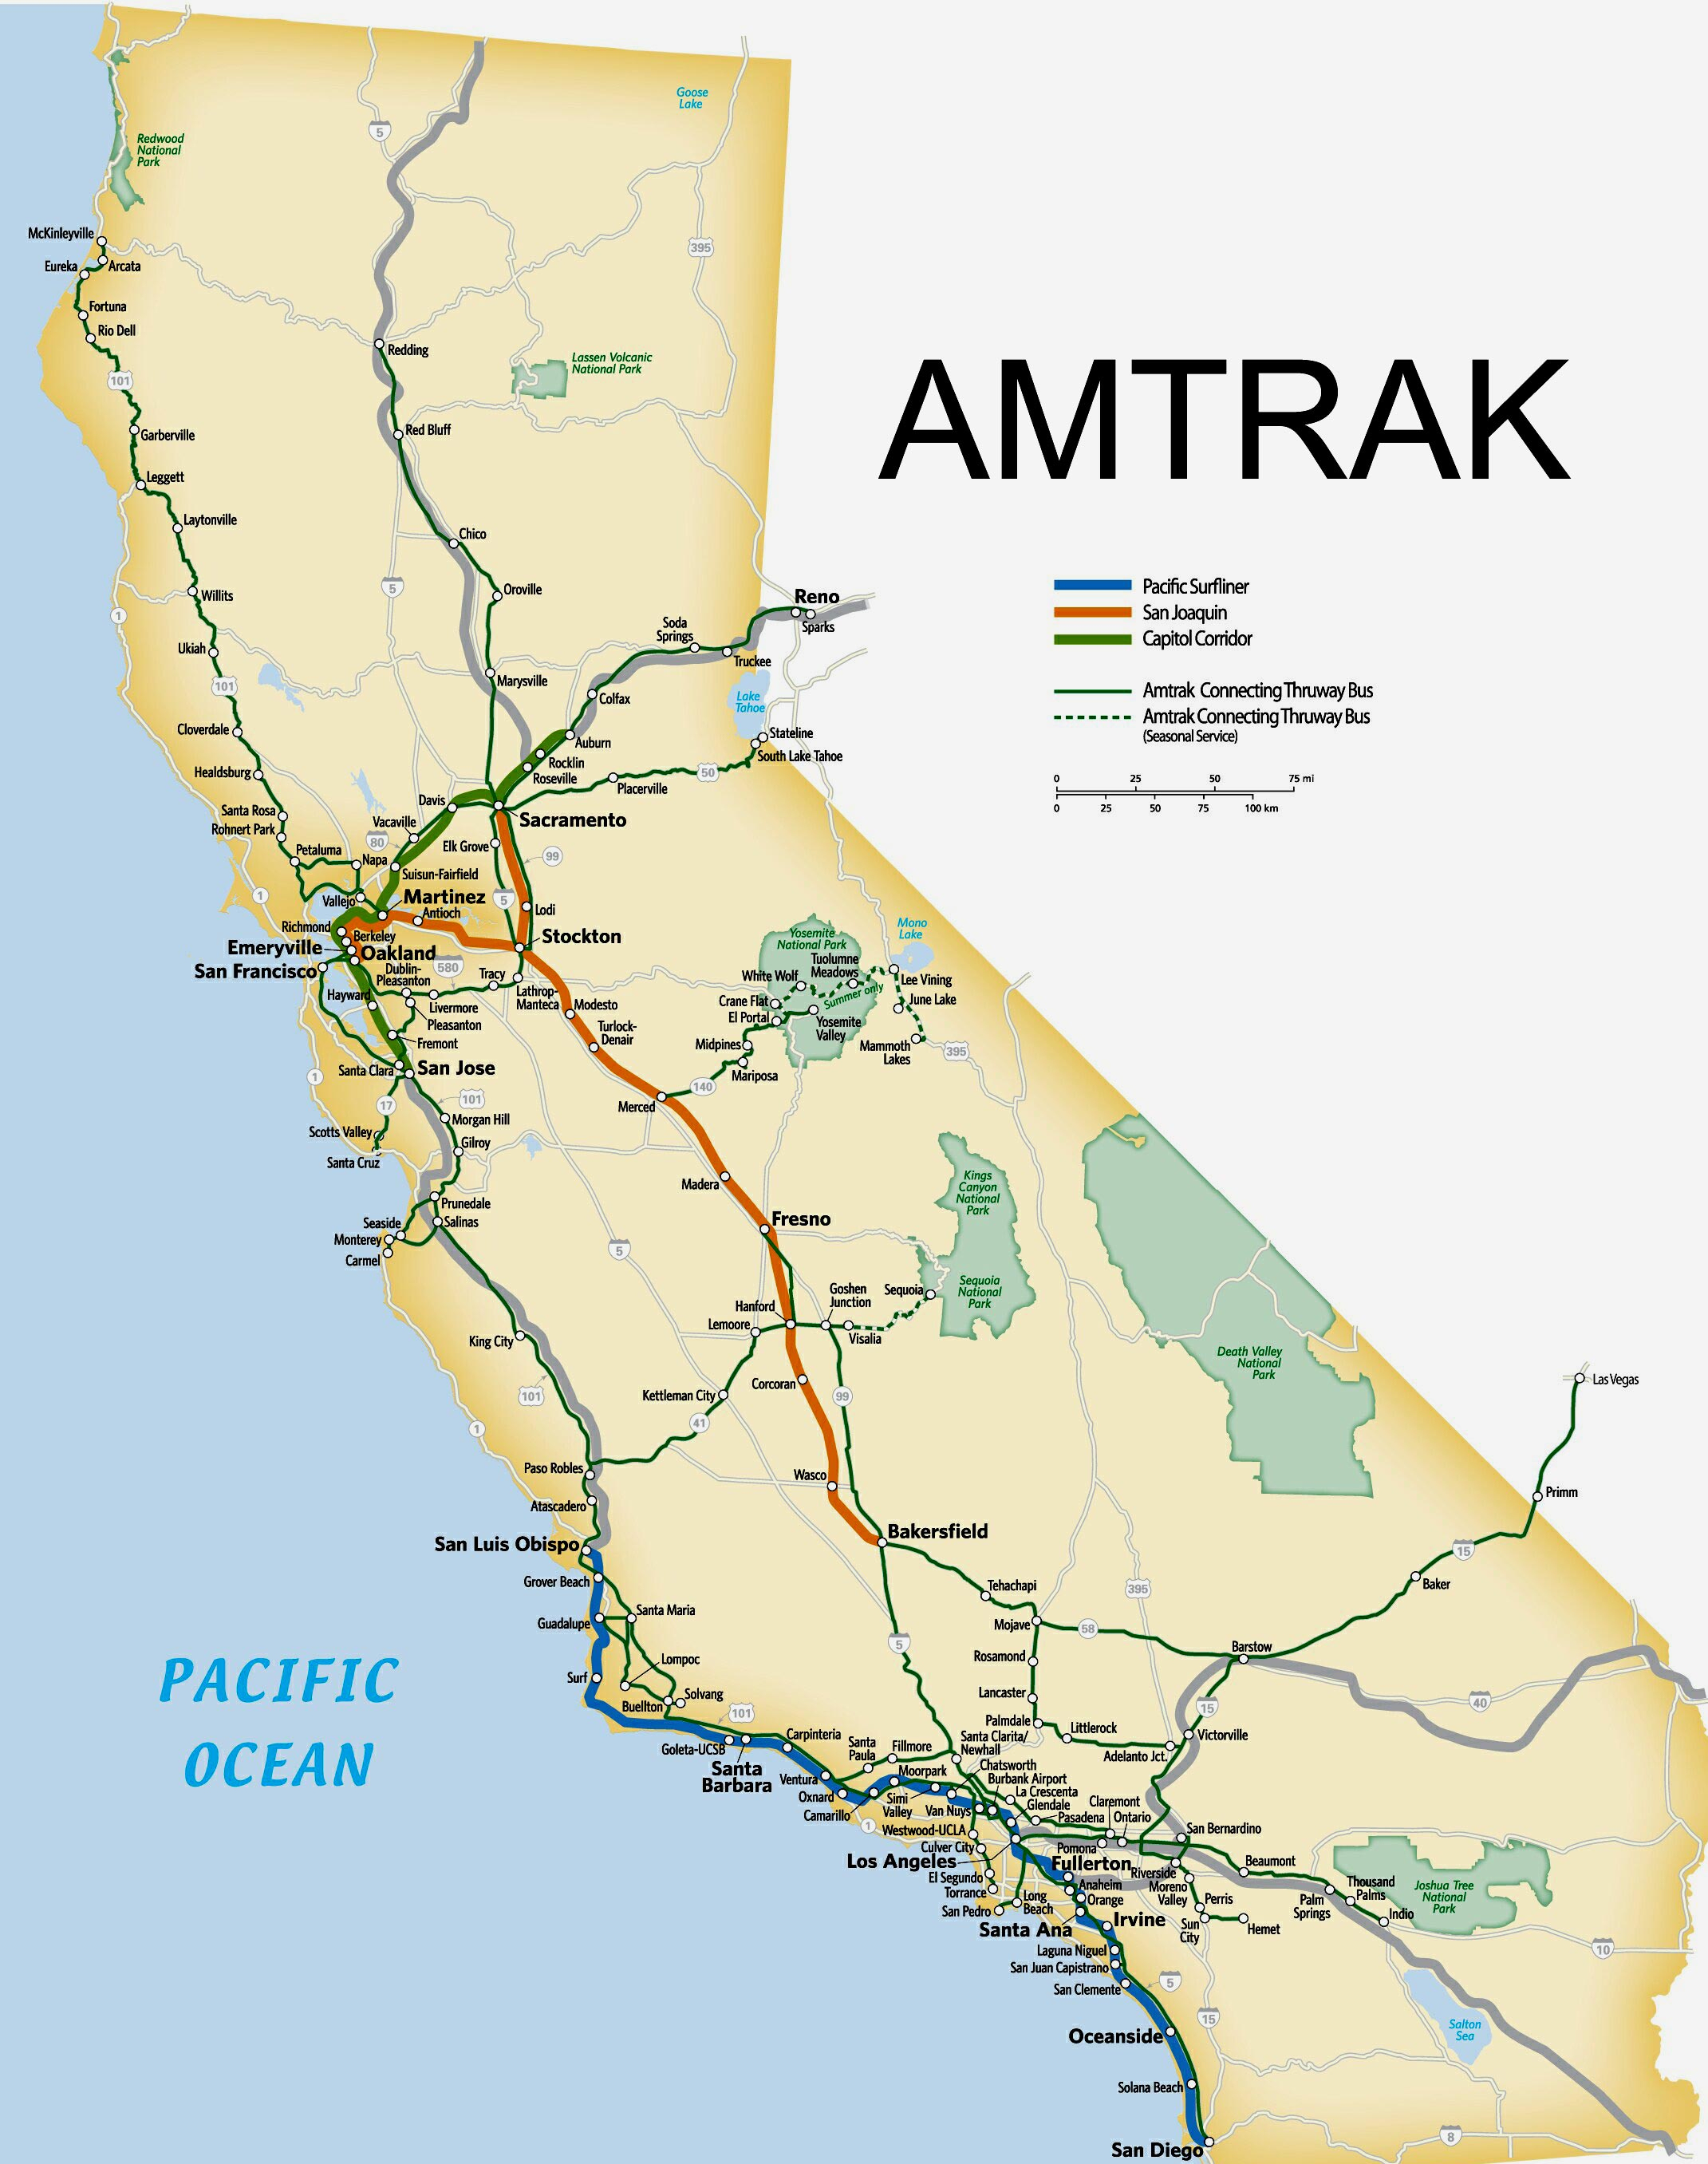 Amtrak Route Map Southern Map Of California Springs Amtrak Map - Amtrak Train Map California